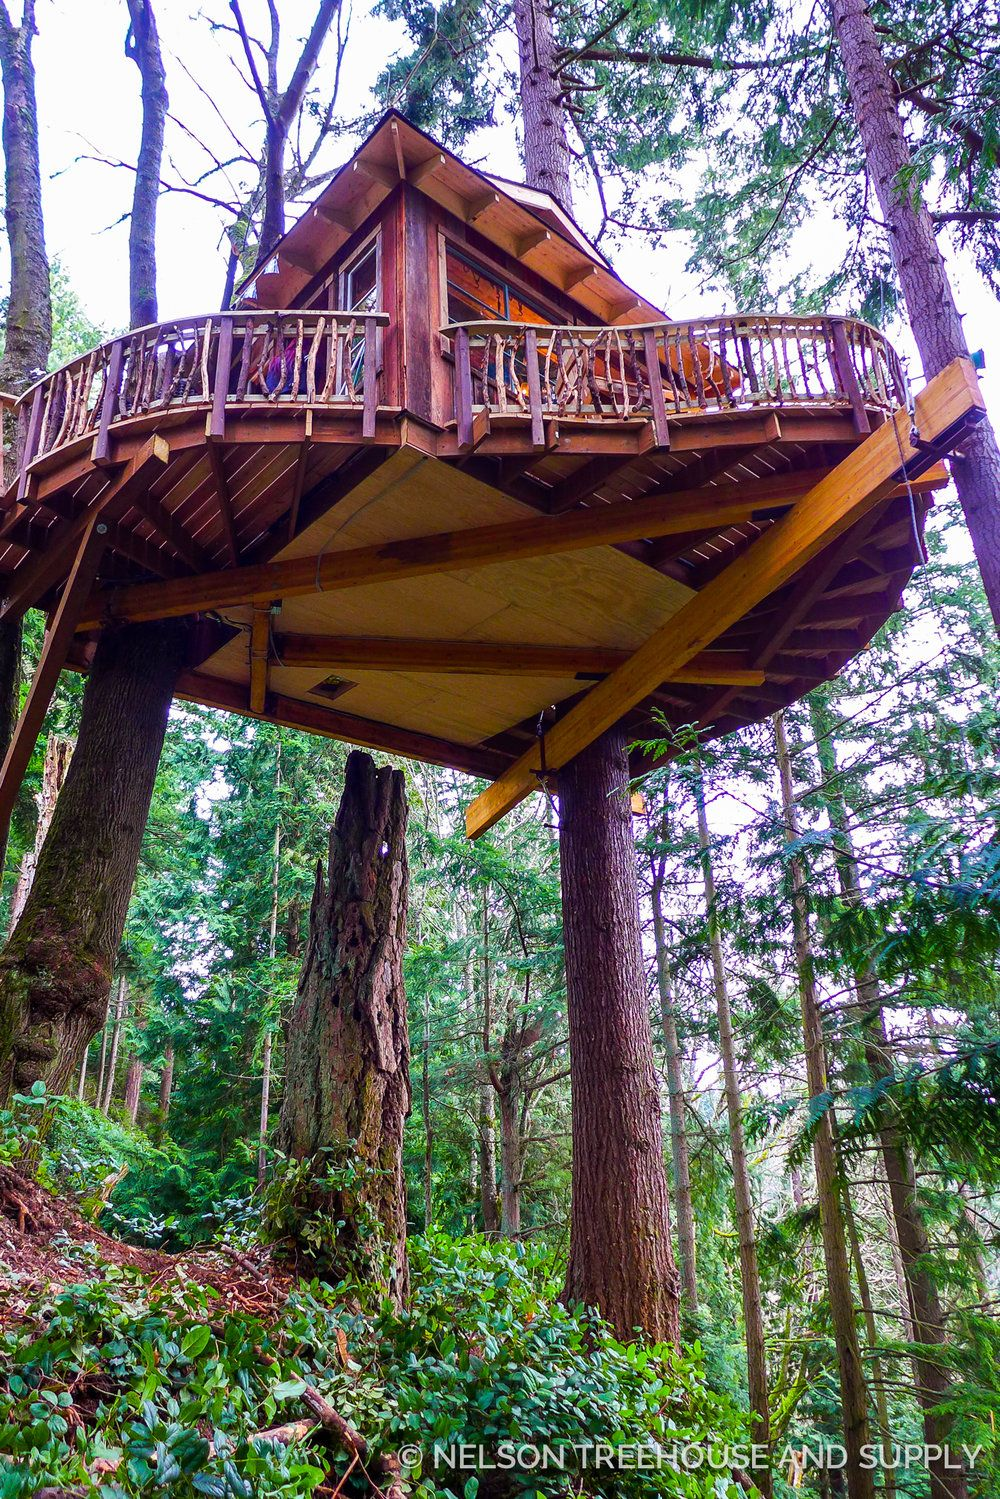 Nelson Treehouse Sky Pirate Hideout | Tree Houses | Pinterest ...